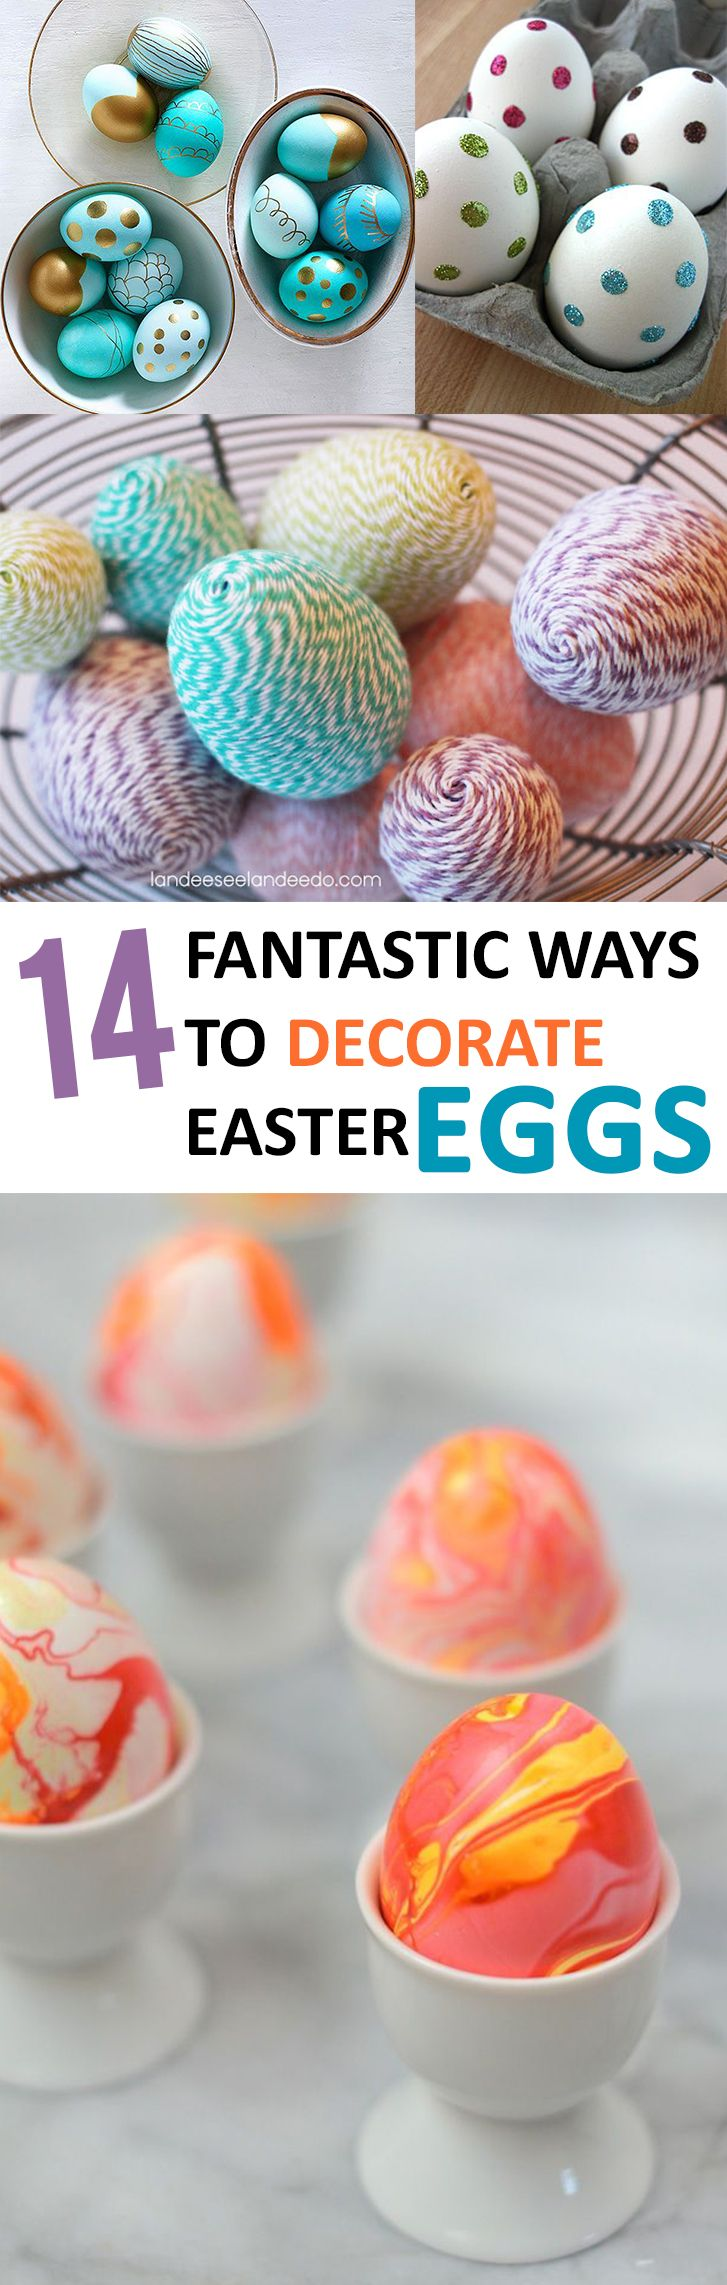 14 Fantastic Ways to Decorate #Easter Eggs - #9 is really cool. Shared from @sunlitspaces